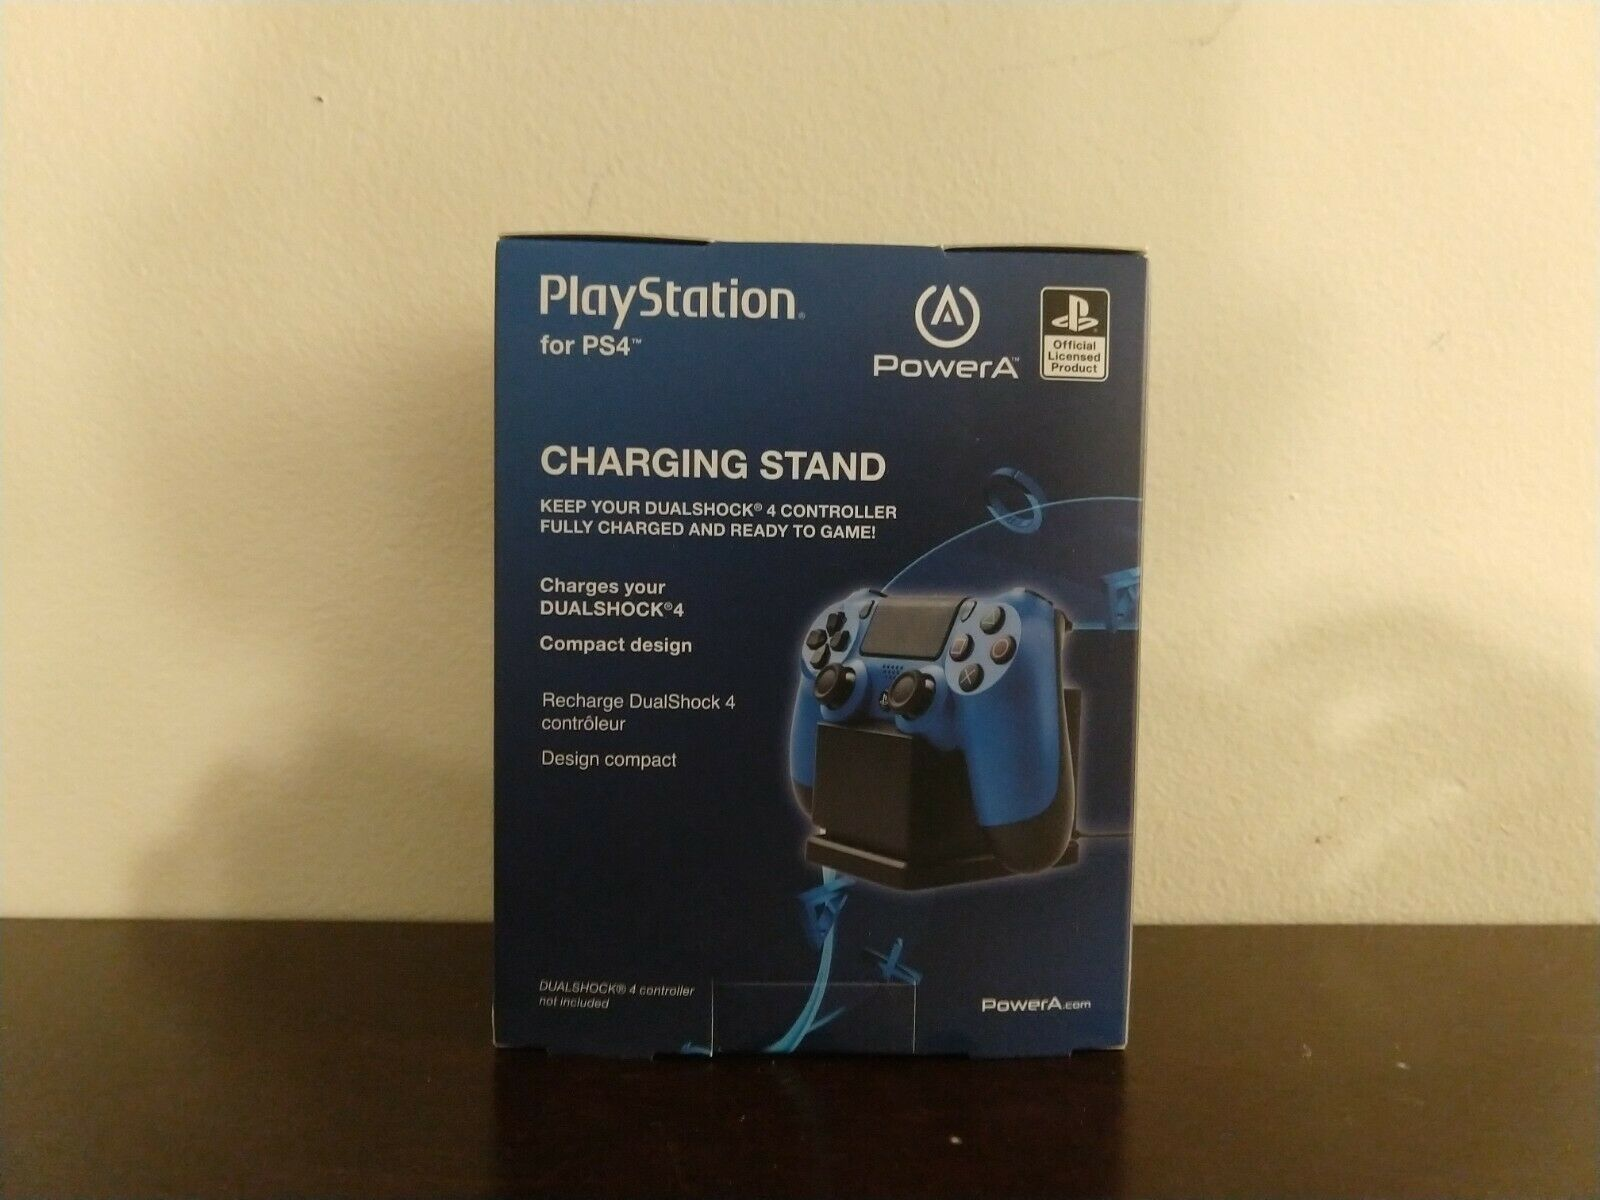 PlayStation PowerA Charging Stand PS4 Dualshock 4 Controller NEW X2